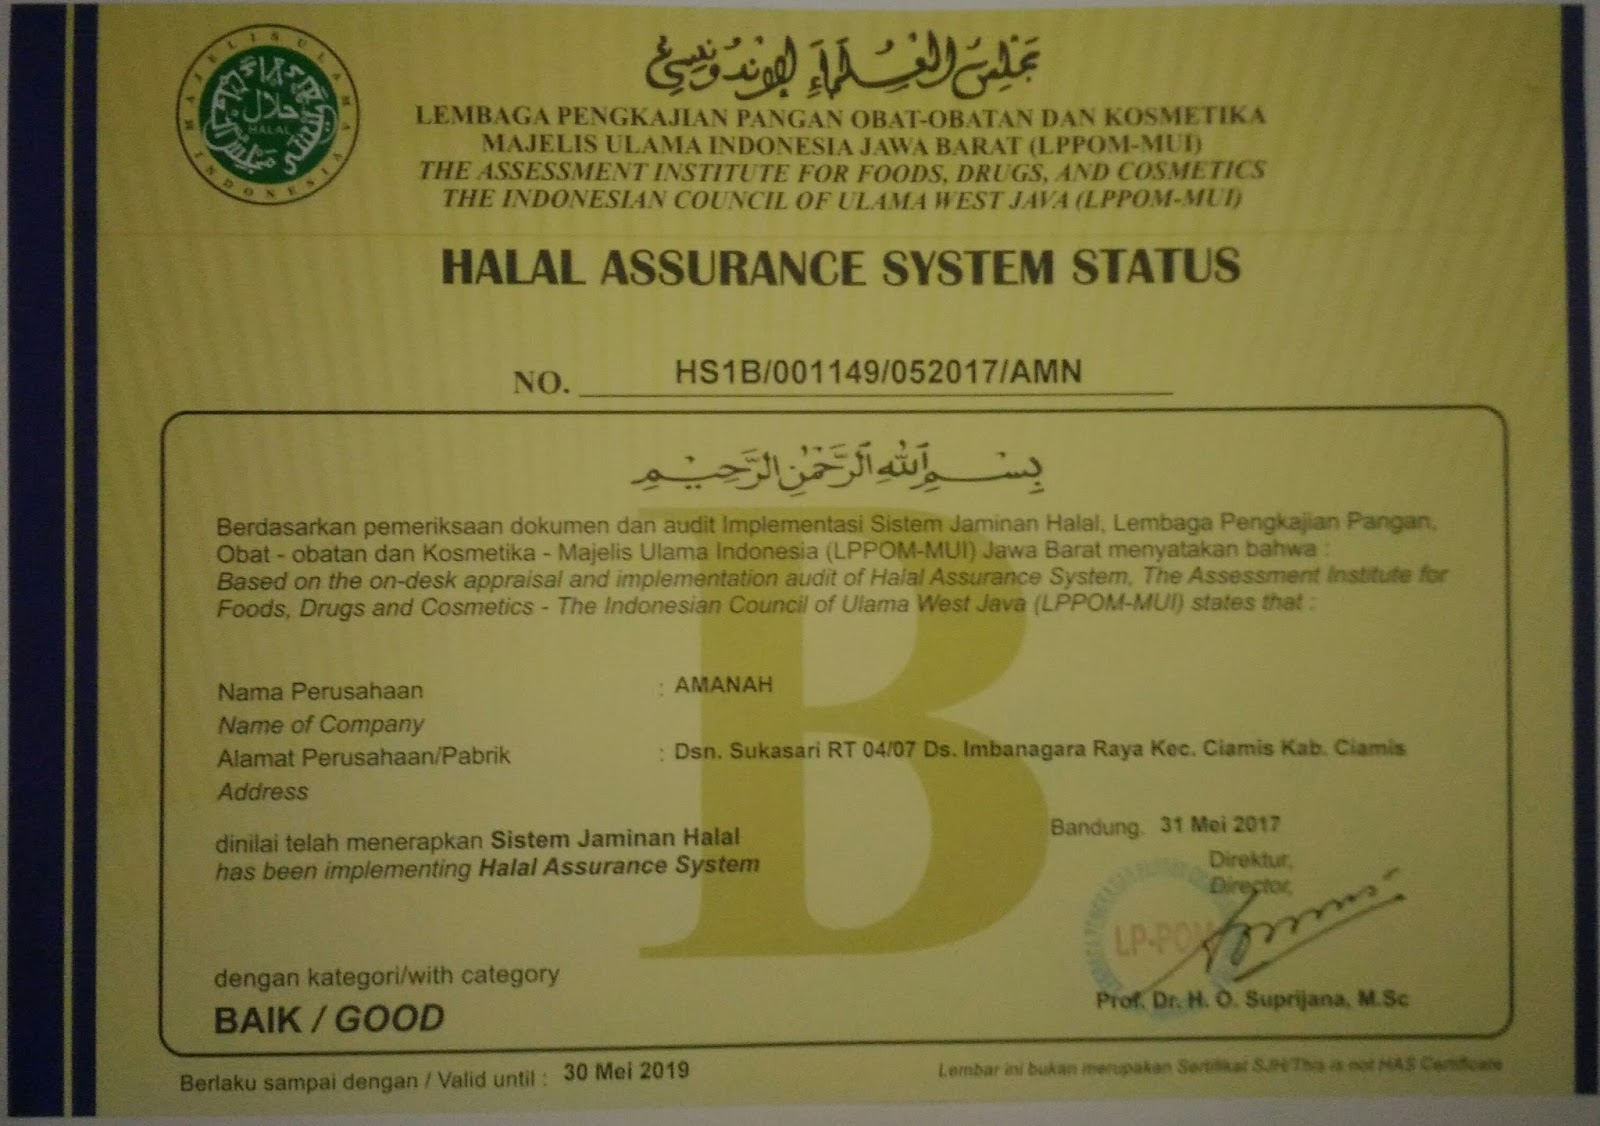 quality assurance in halal food manufacturing In-depth interviews related to the quality assurance and halal practices in food manufacturing plants were conducted among the quality assurance staff a pilot sample of 30 participants from a food manufacturing company was used.